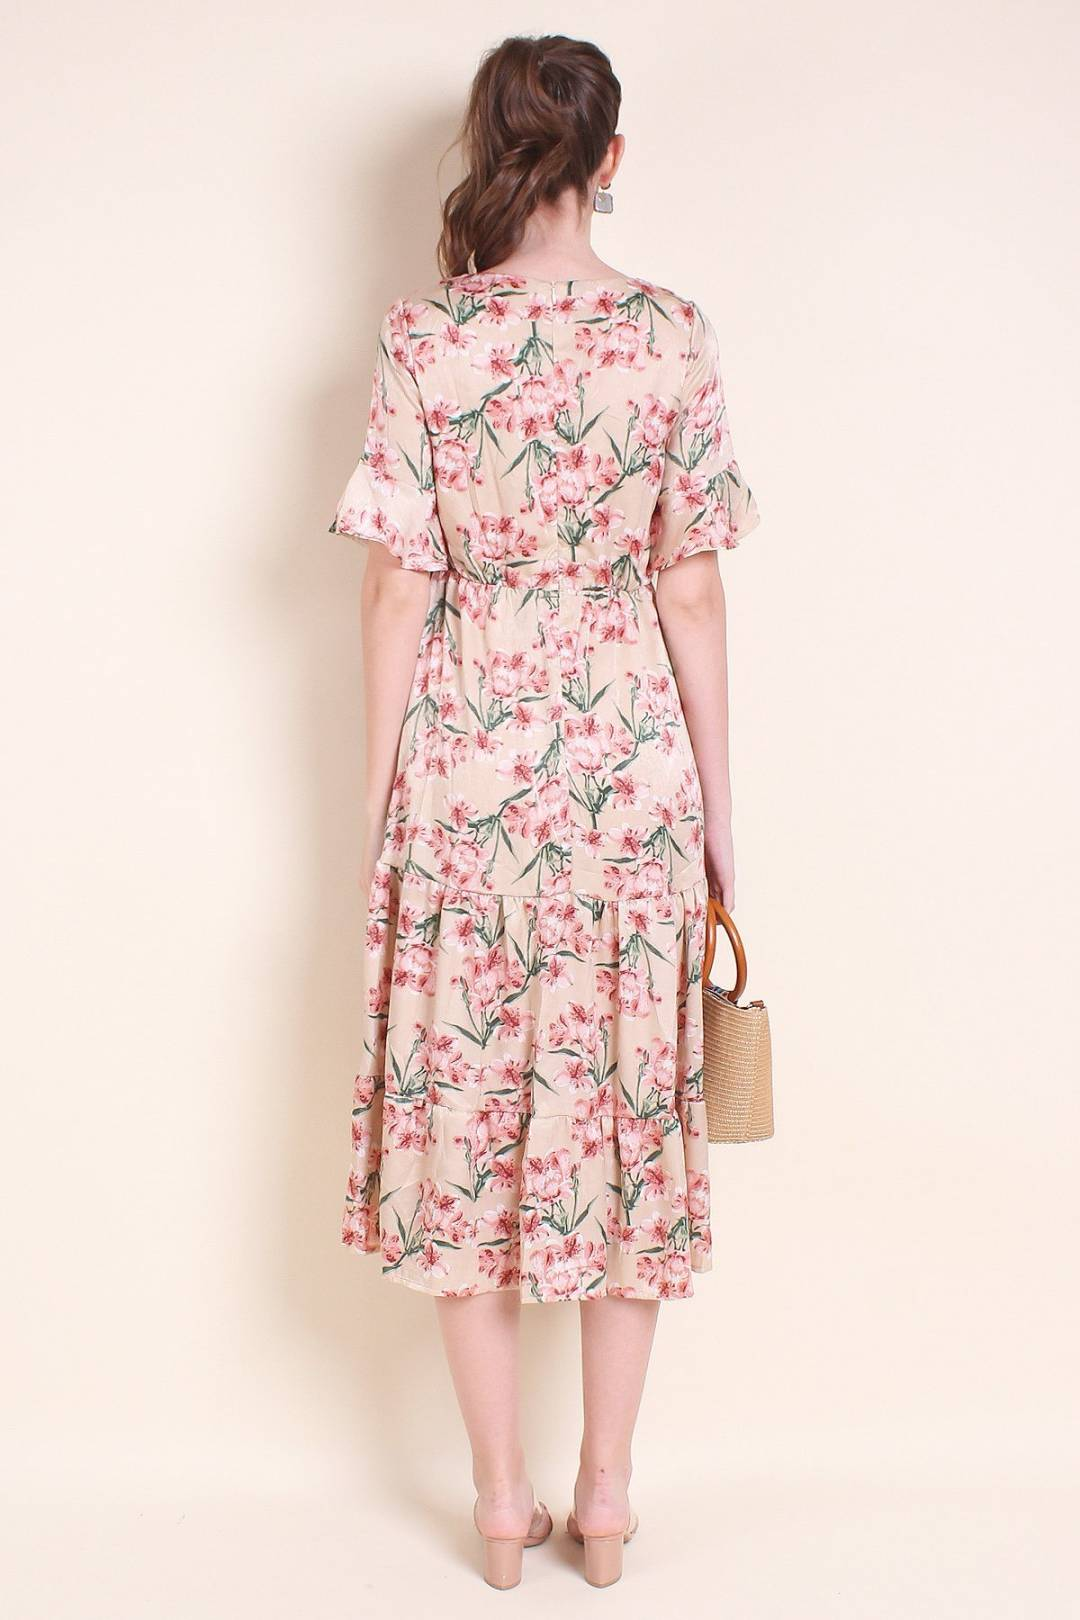 MADEBYNM LORISSA VINTAGE FLUTED SLEEVES MAXI IN BEIGE FLORAL [XS/S/M/L]